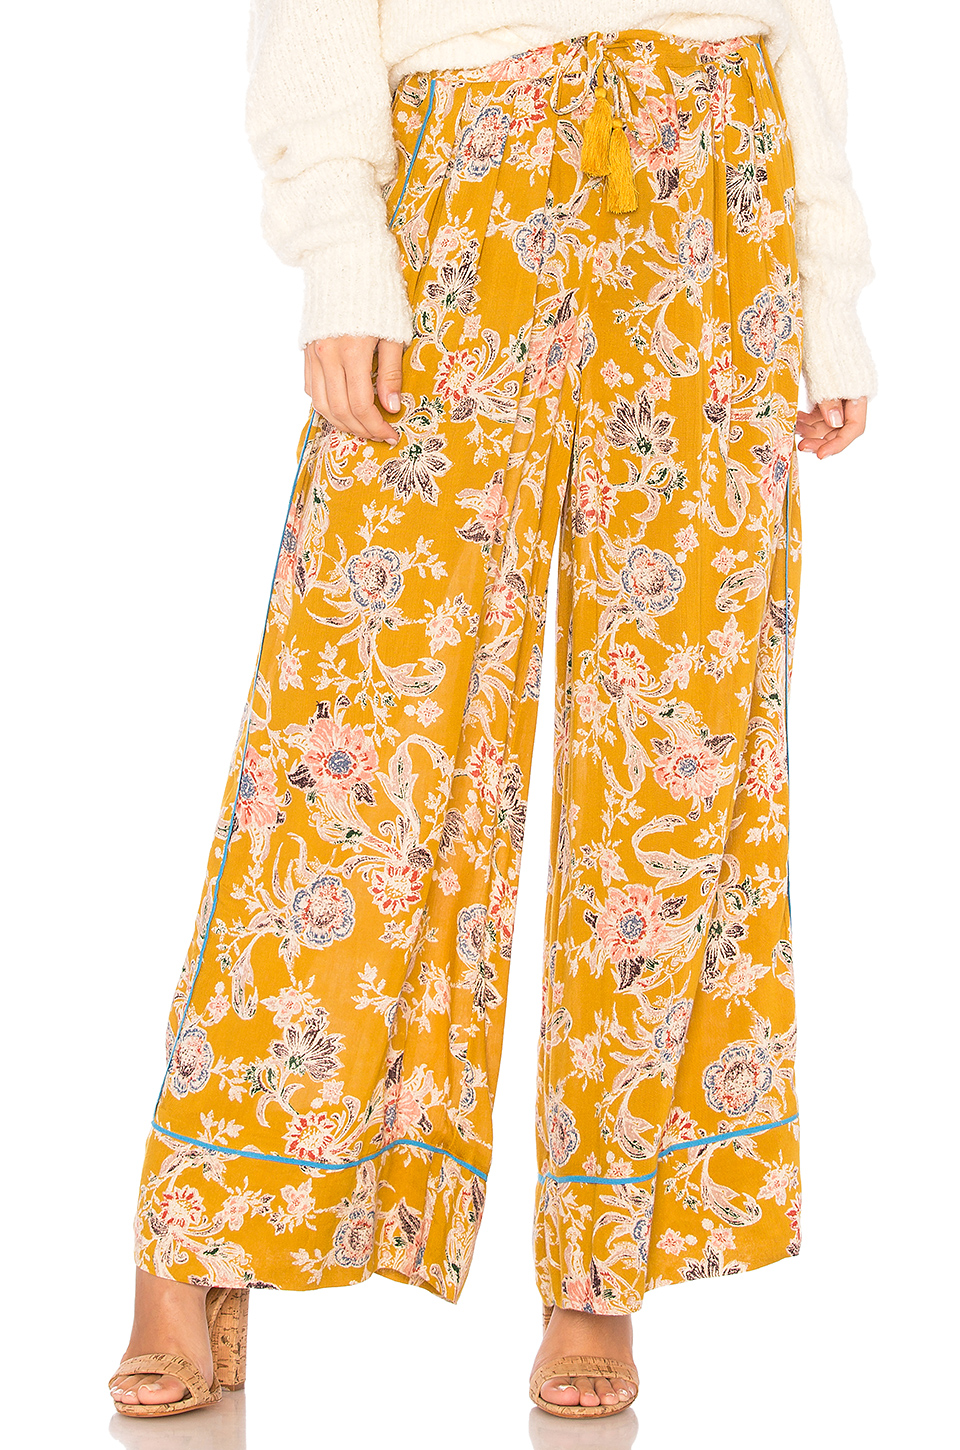 Free People Bali Wildflower Pant in Gold